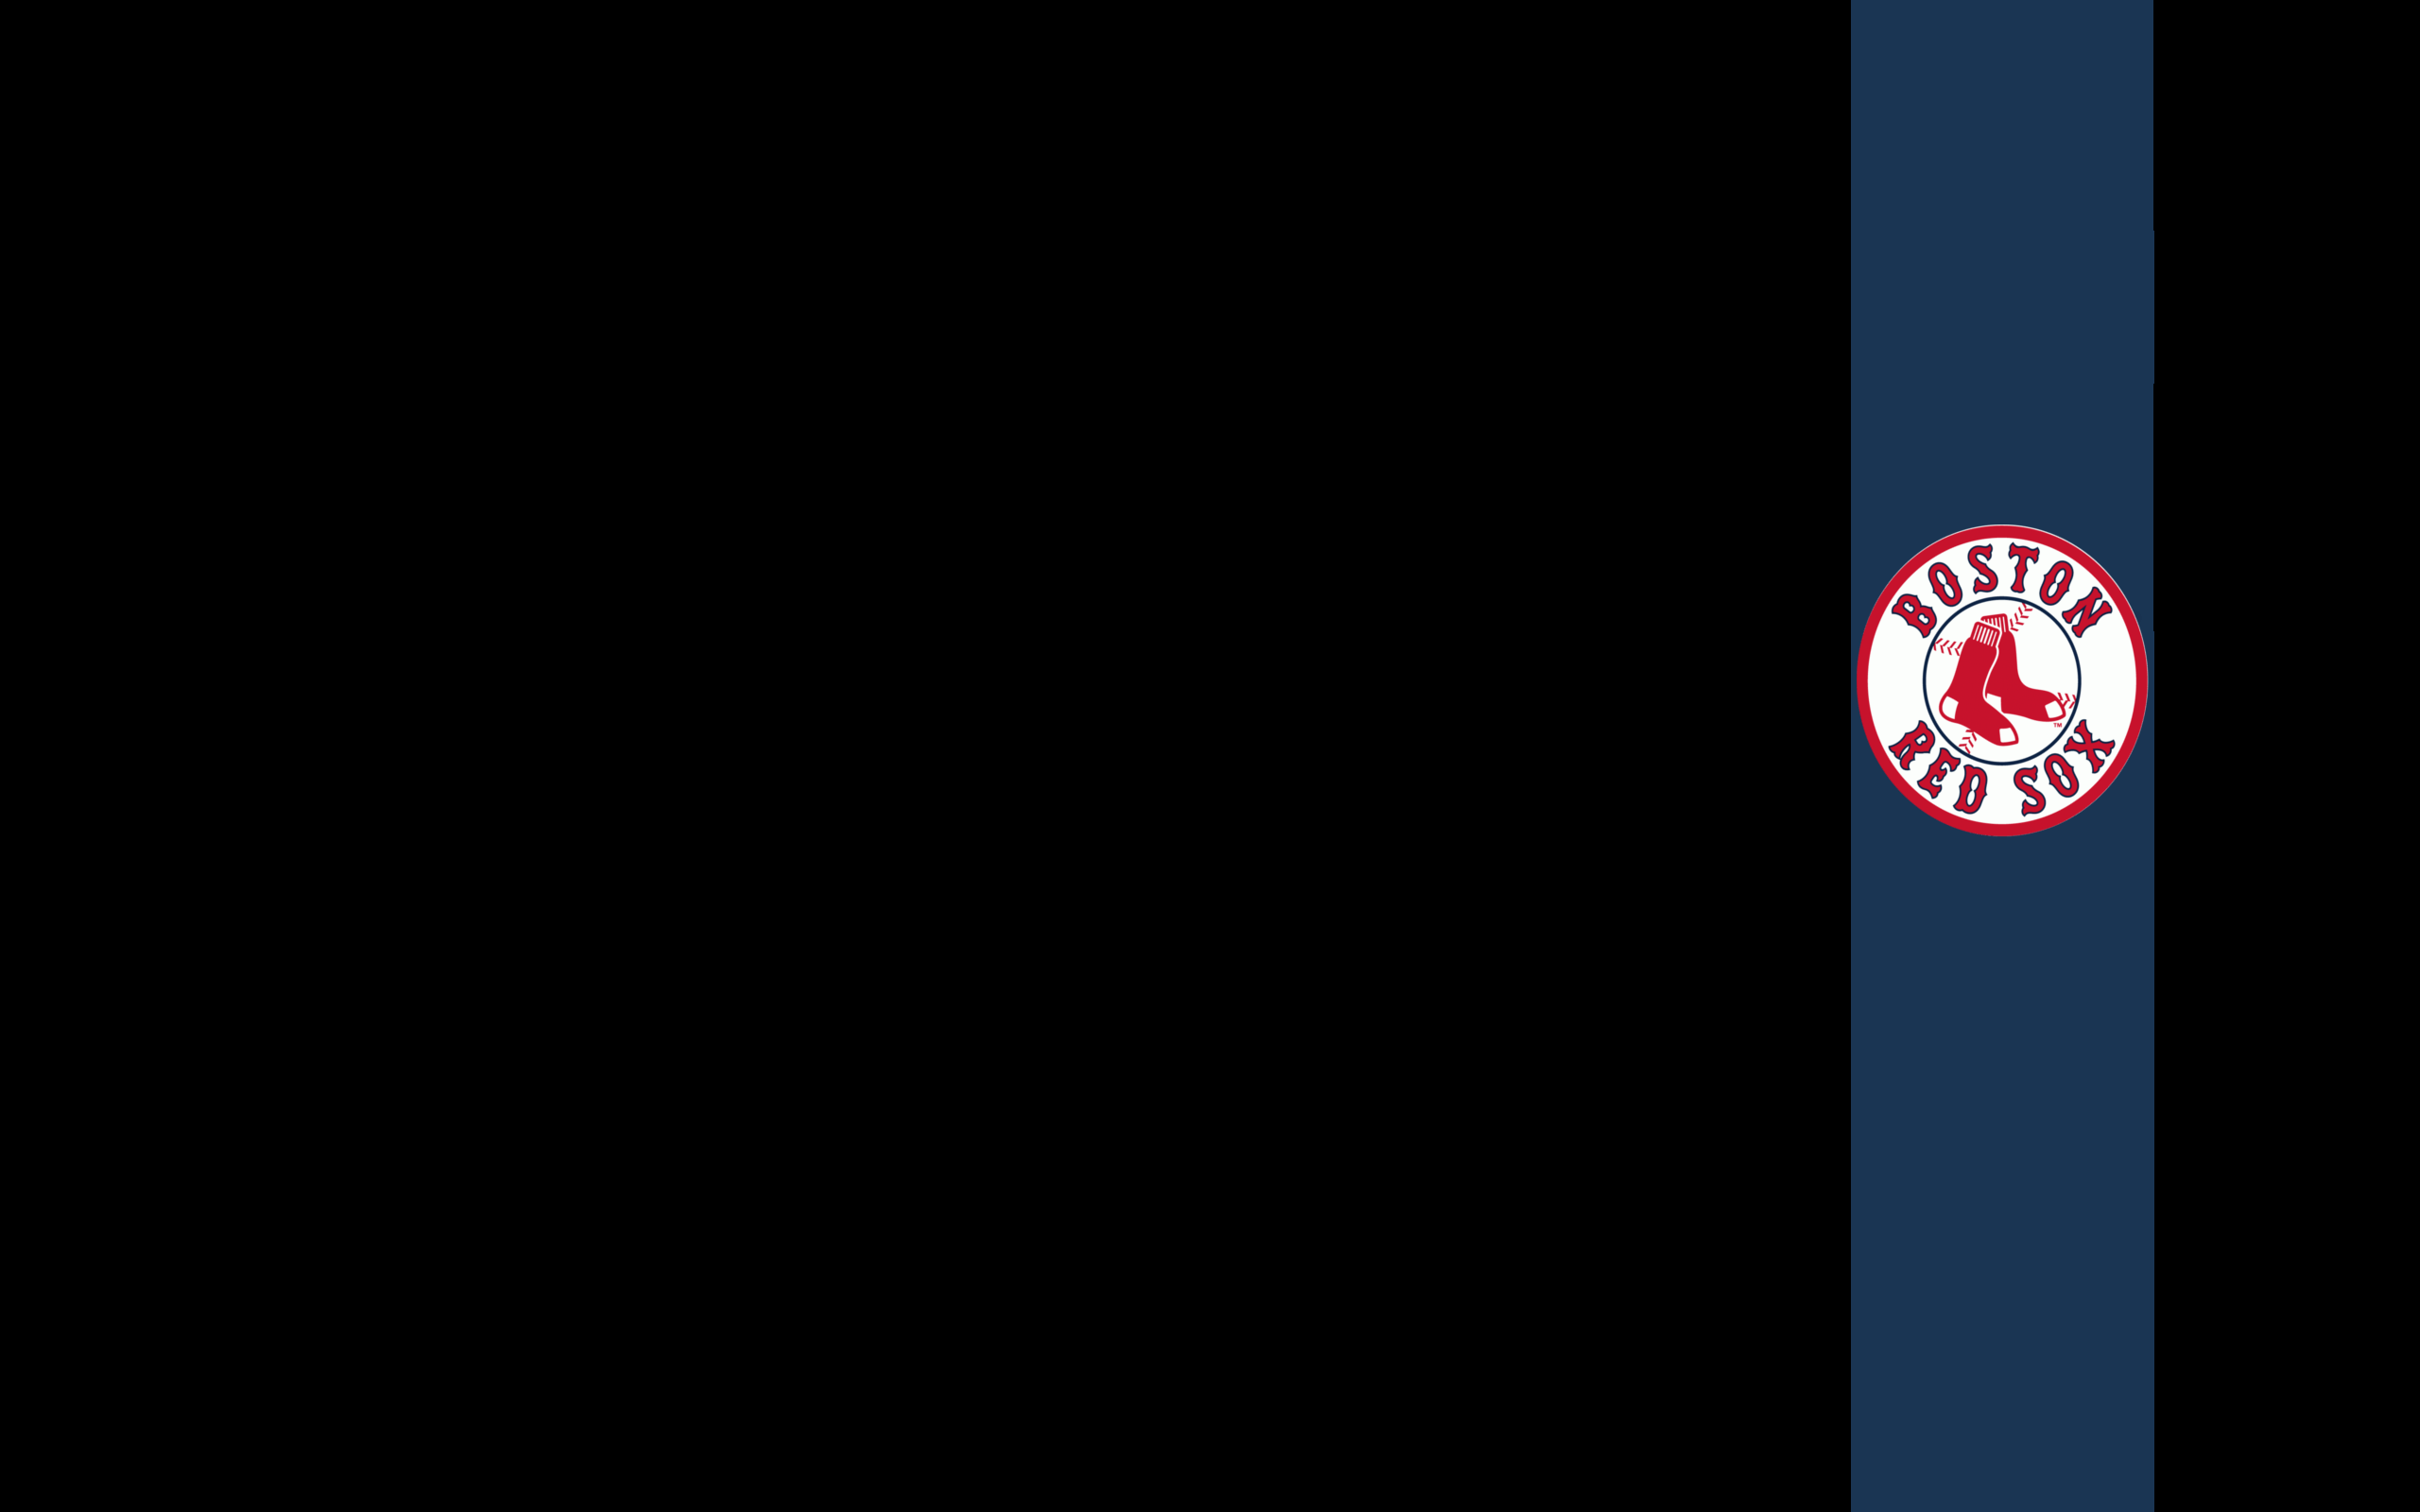 Red Sox Logo Wallpapers - wallpaper.wiki